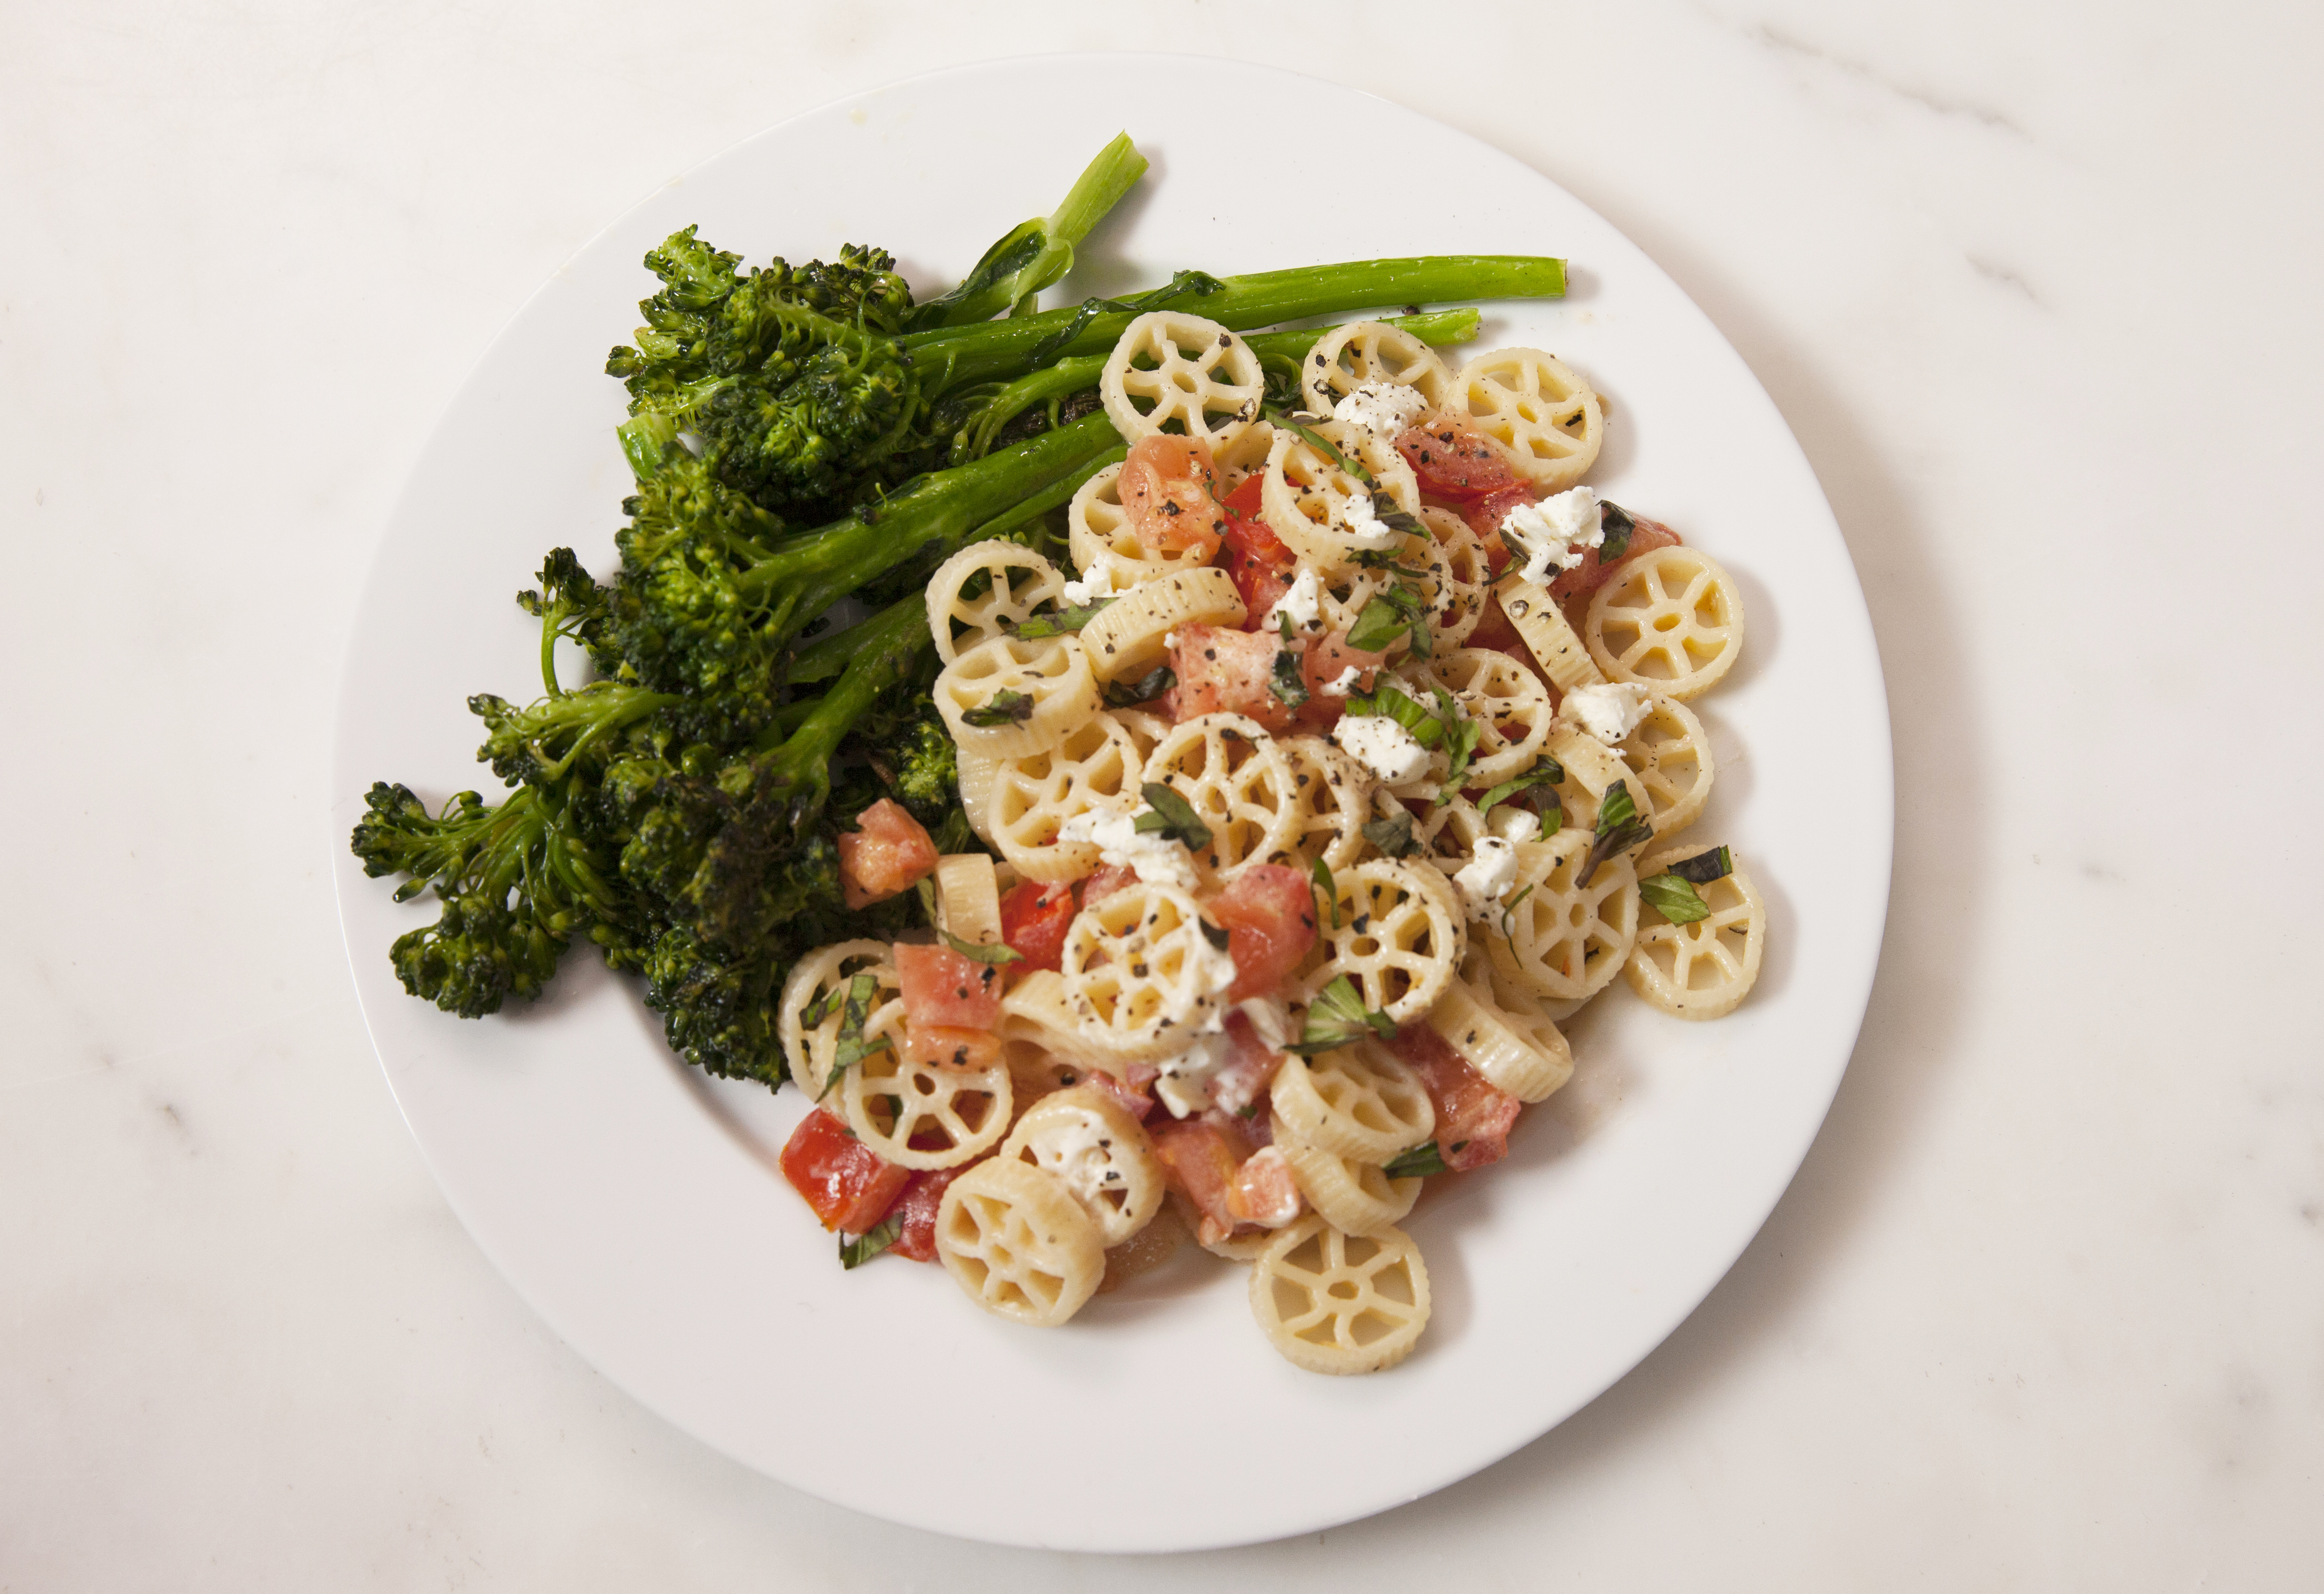 Marley Spoon's Creamy Wagon Wheel Pasta with tomatoes and garlicky broccolini.